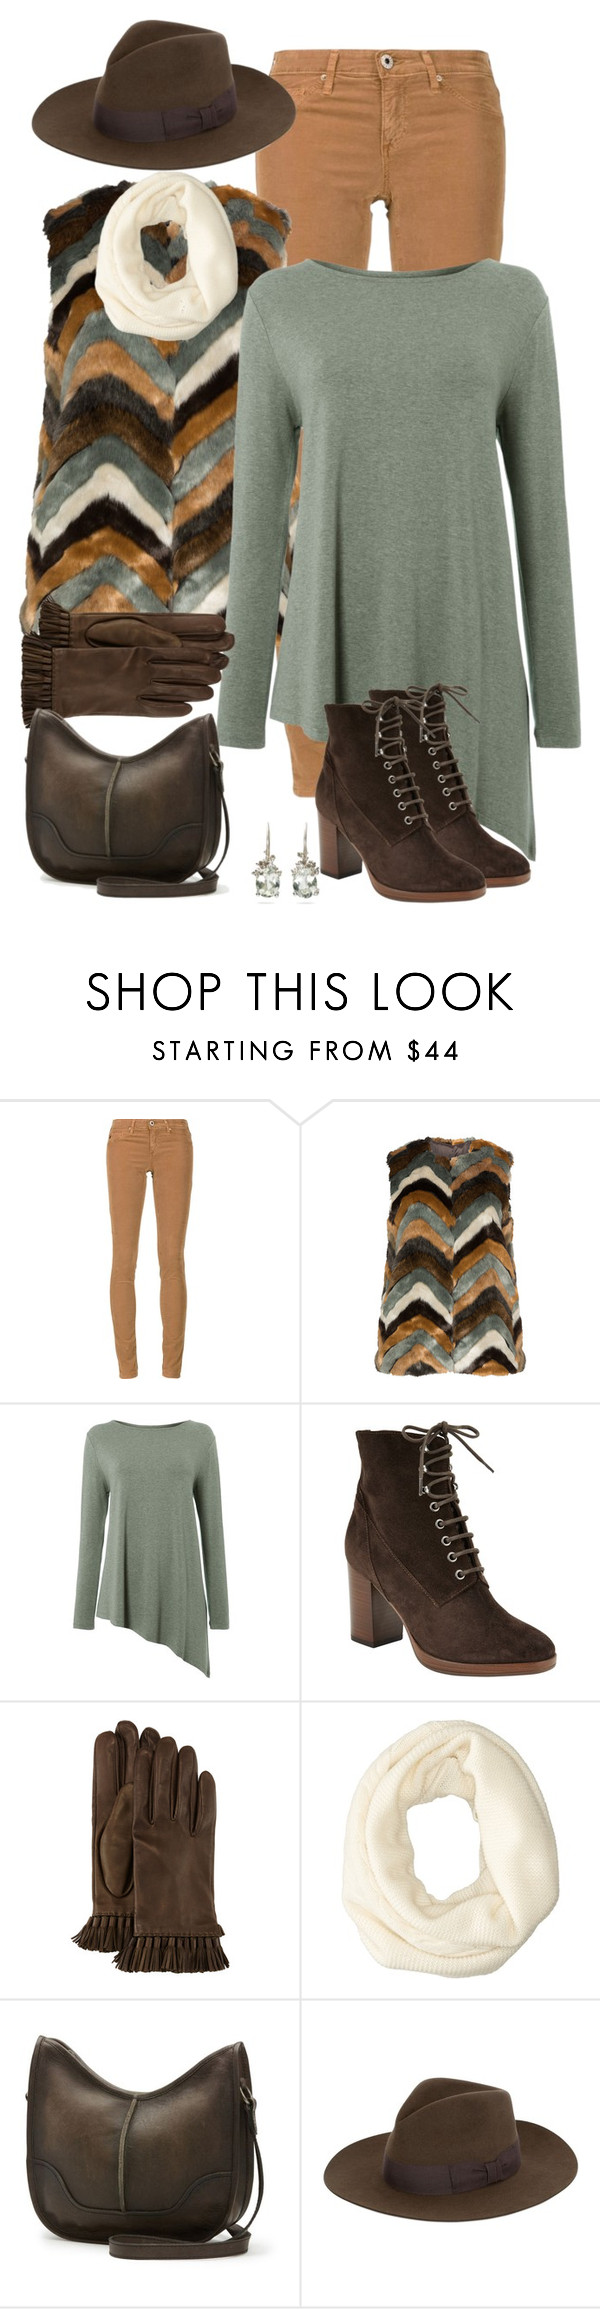 """""""Ankle Boots!"""" by susan0219 ❤ liked on Polyvore featuring AG Adriano Goldschmied, Samoon, Gray & Willow, John Lewis, Rebecca Minkoff, Lauren Ralph Lauren, Frye, Yves Saint Laurent and Ruth Tomlinson"""